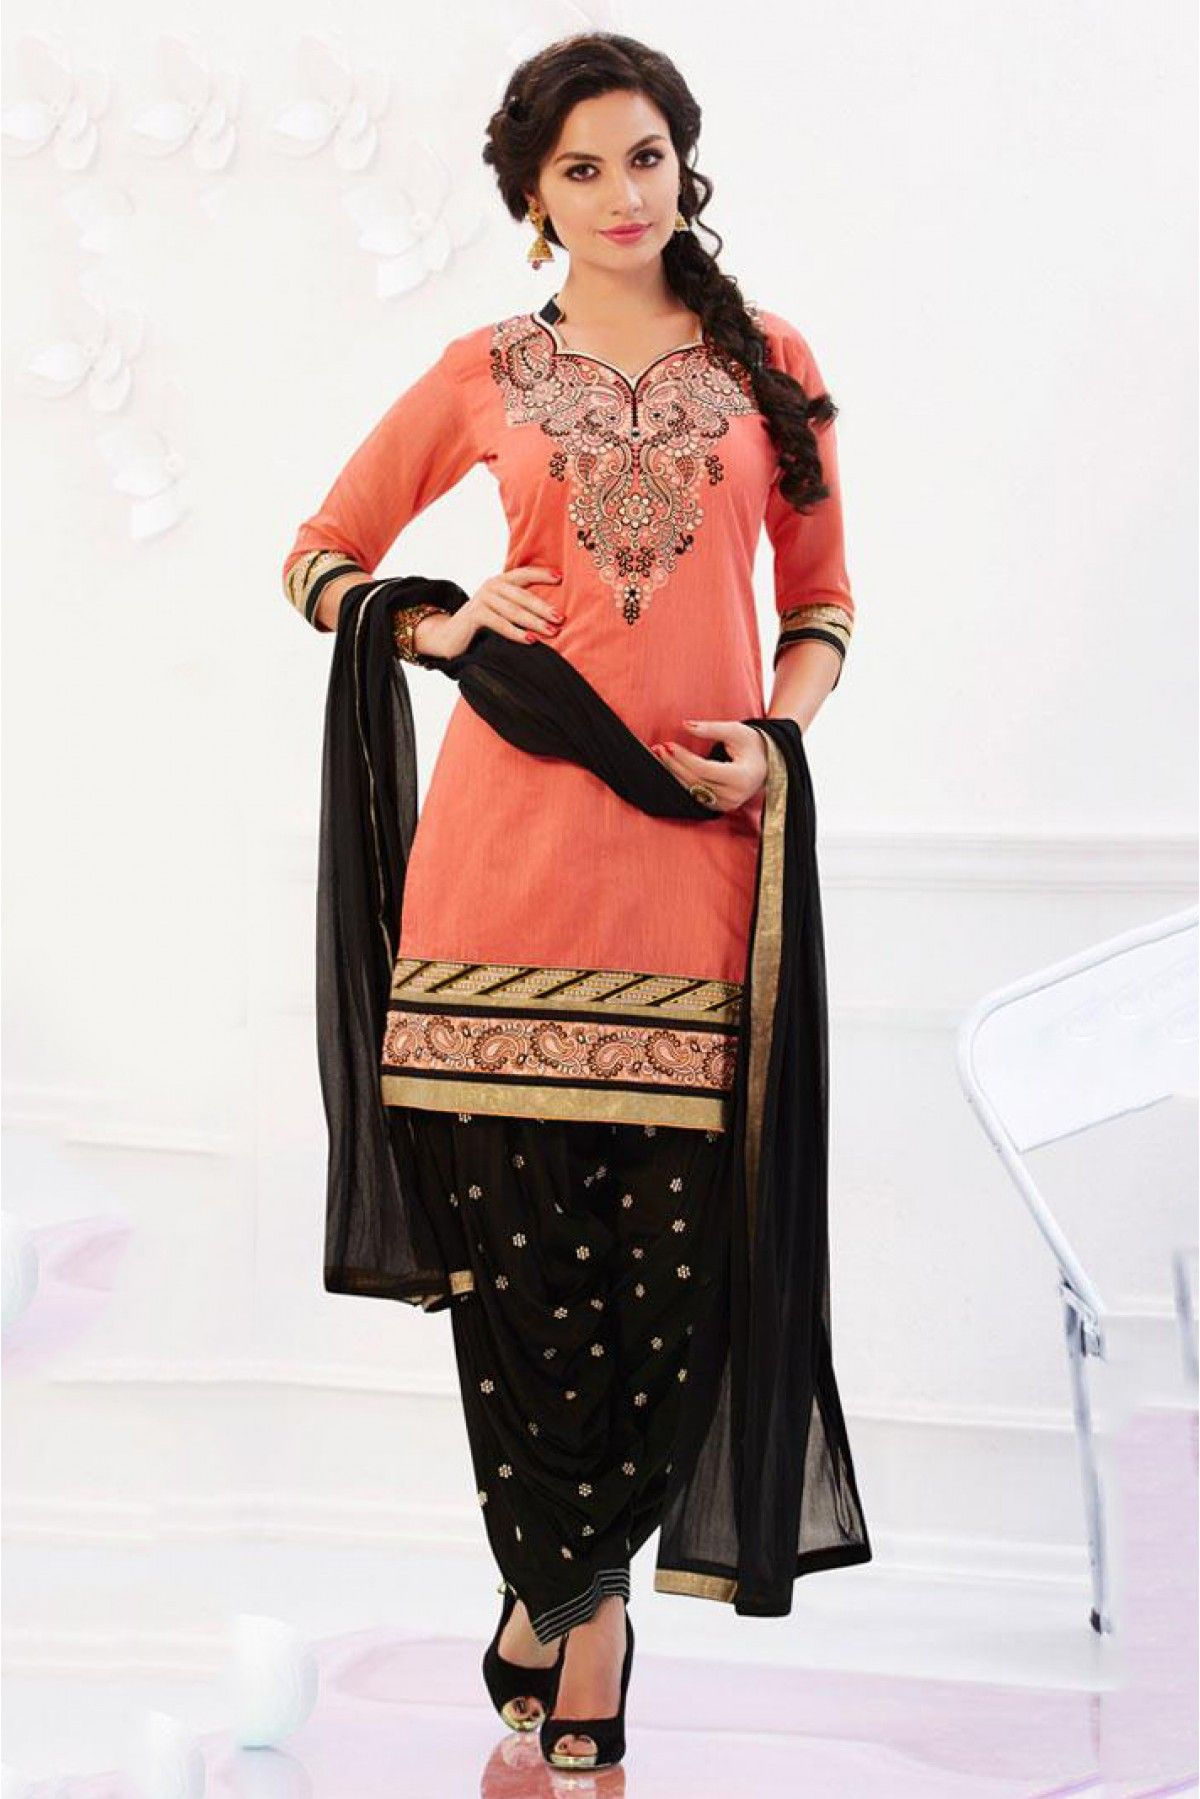 56d96aafc2 Black and Peach Colour Banarasi Chanderi Fabric Designer Unstitched Patiala  Salwar Kameez Comes With Matching Dupatta and Bottom Fabric.